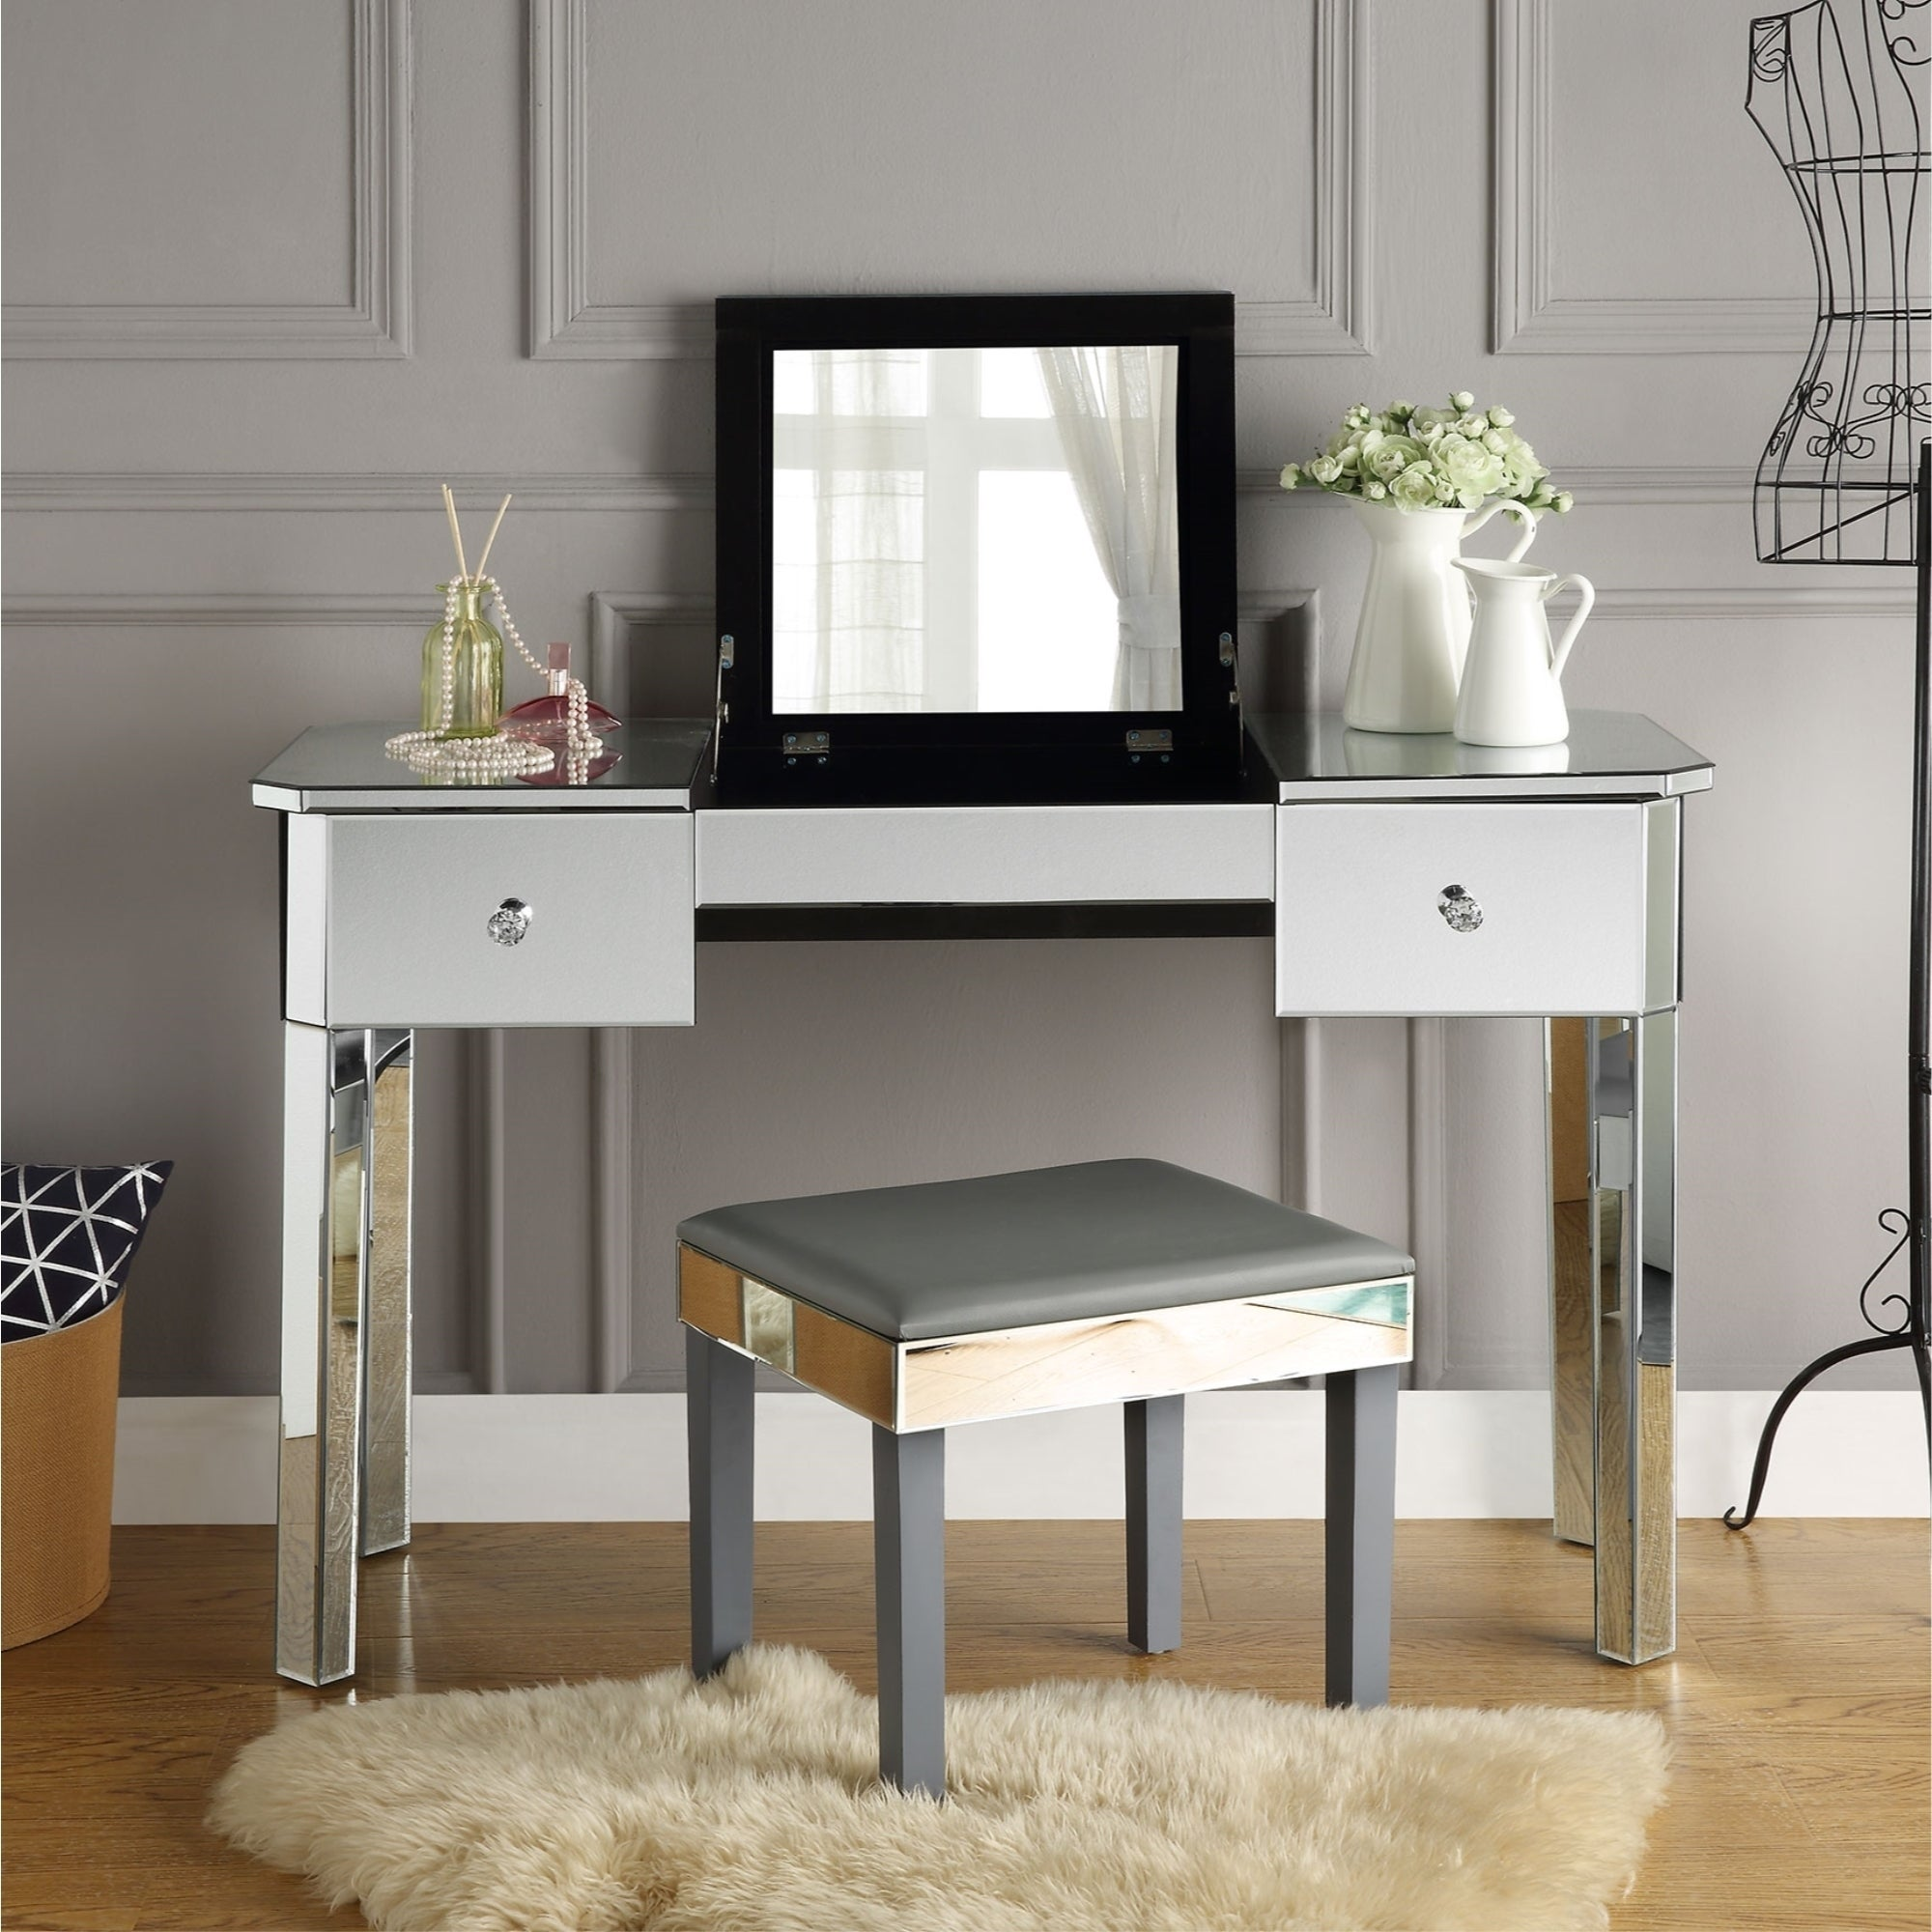 Shop addison mirrored makeup vanity table with 2 drawers on sale free shipping today overstock com 24122788